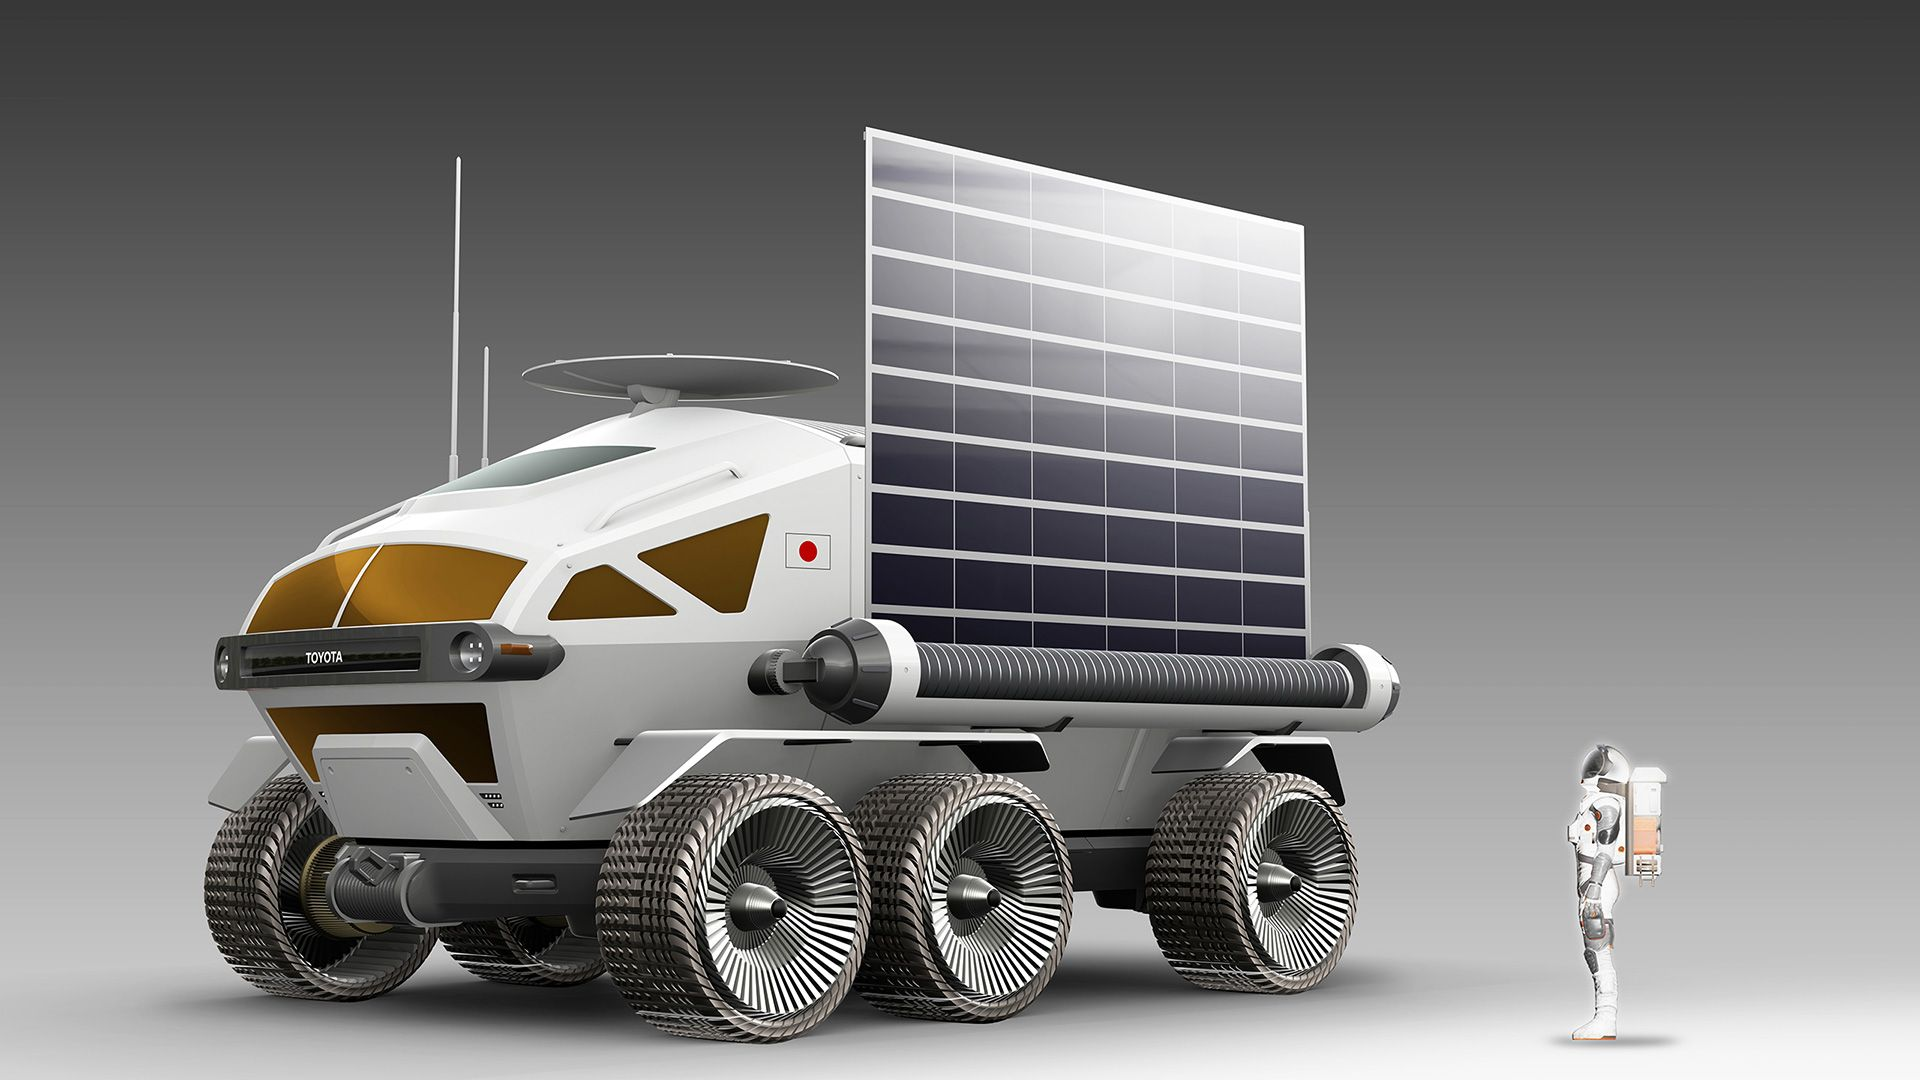 JAXA and Toyota 6-wheeled vehicle